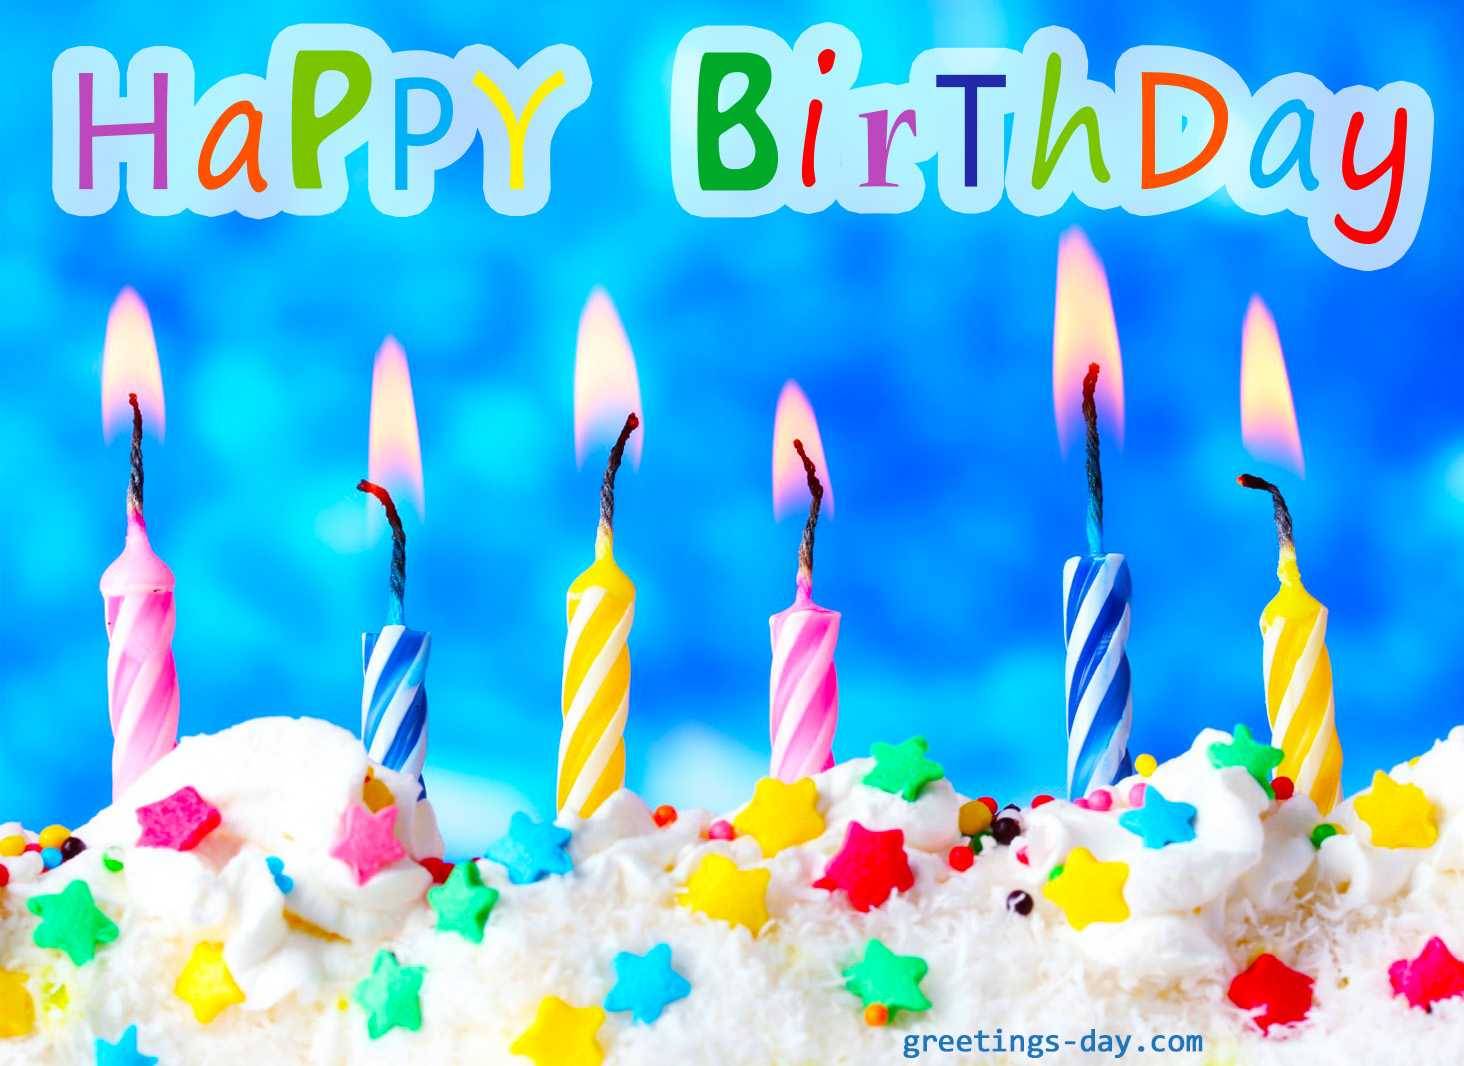 free picture ecards birthday ; happy-birthday-best-ecards-and-wishes-happy-birthday-best-ecards-and-wishes